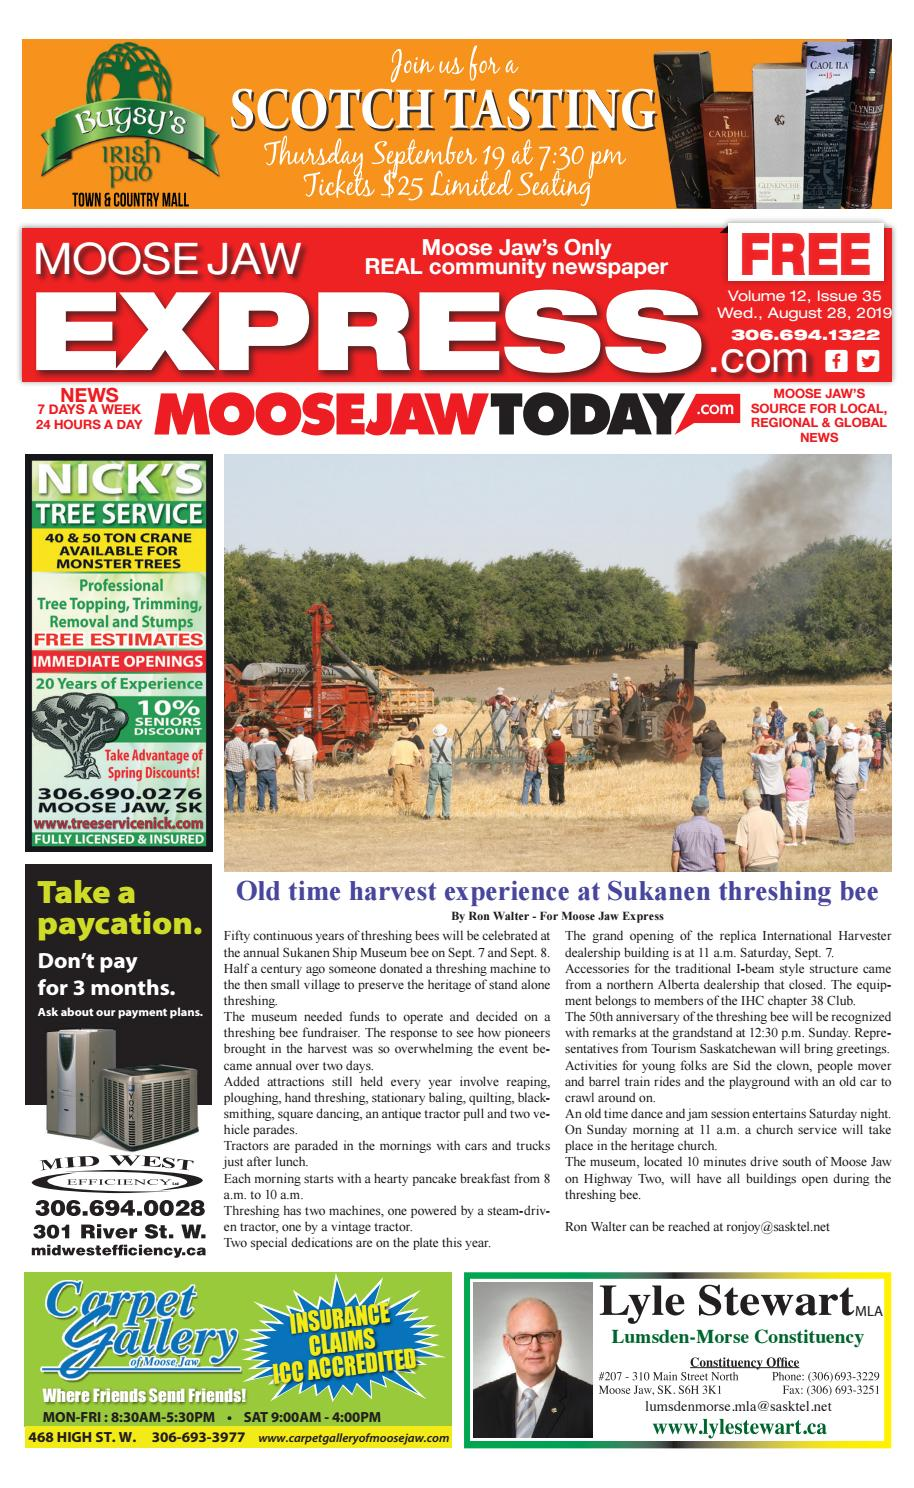 Moose Jaw Express August 28, 2019 by Moose Jaw Express - issuu